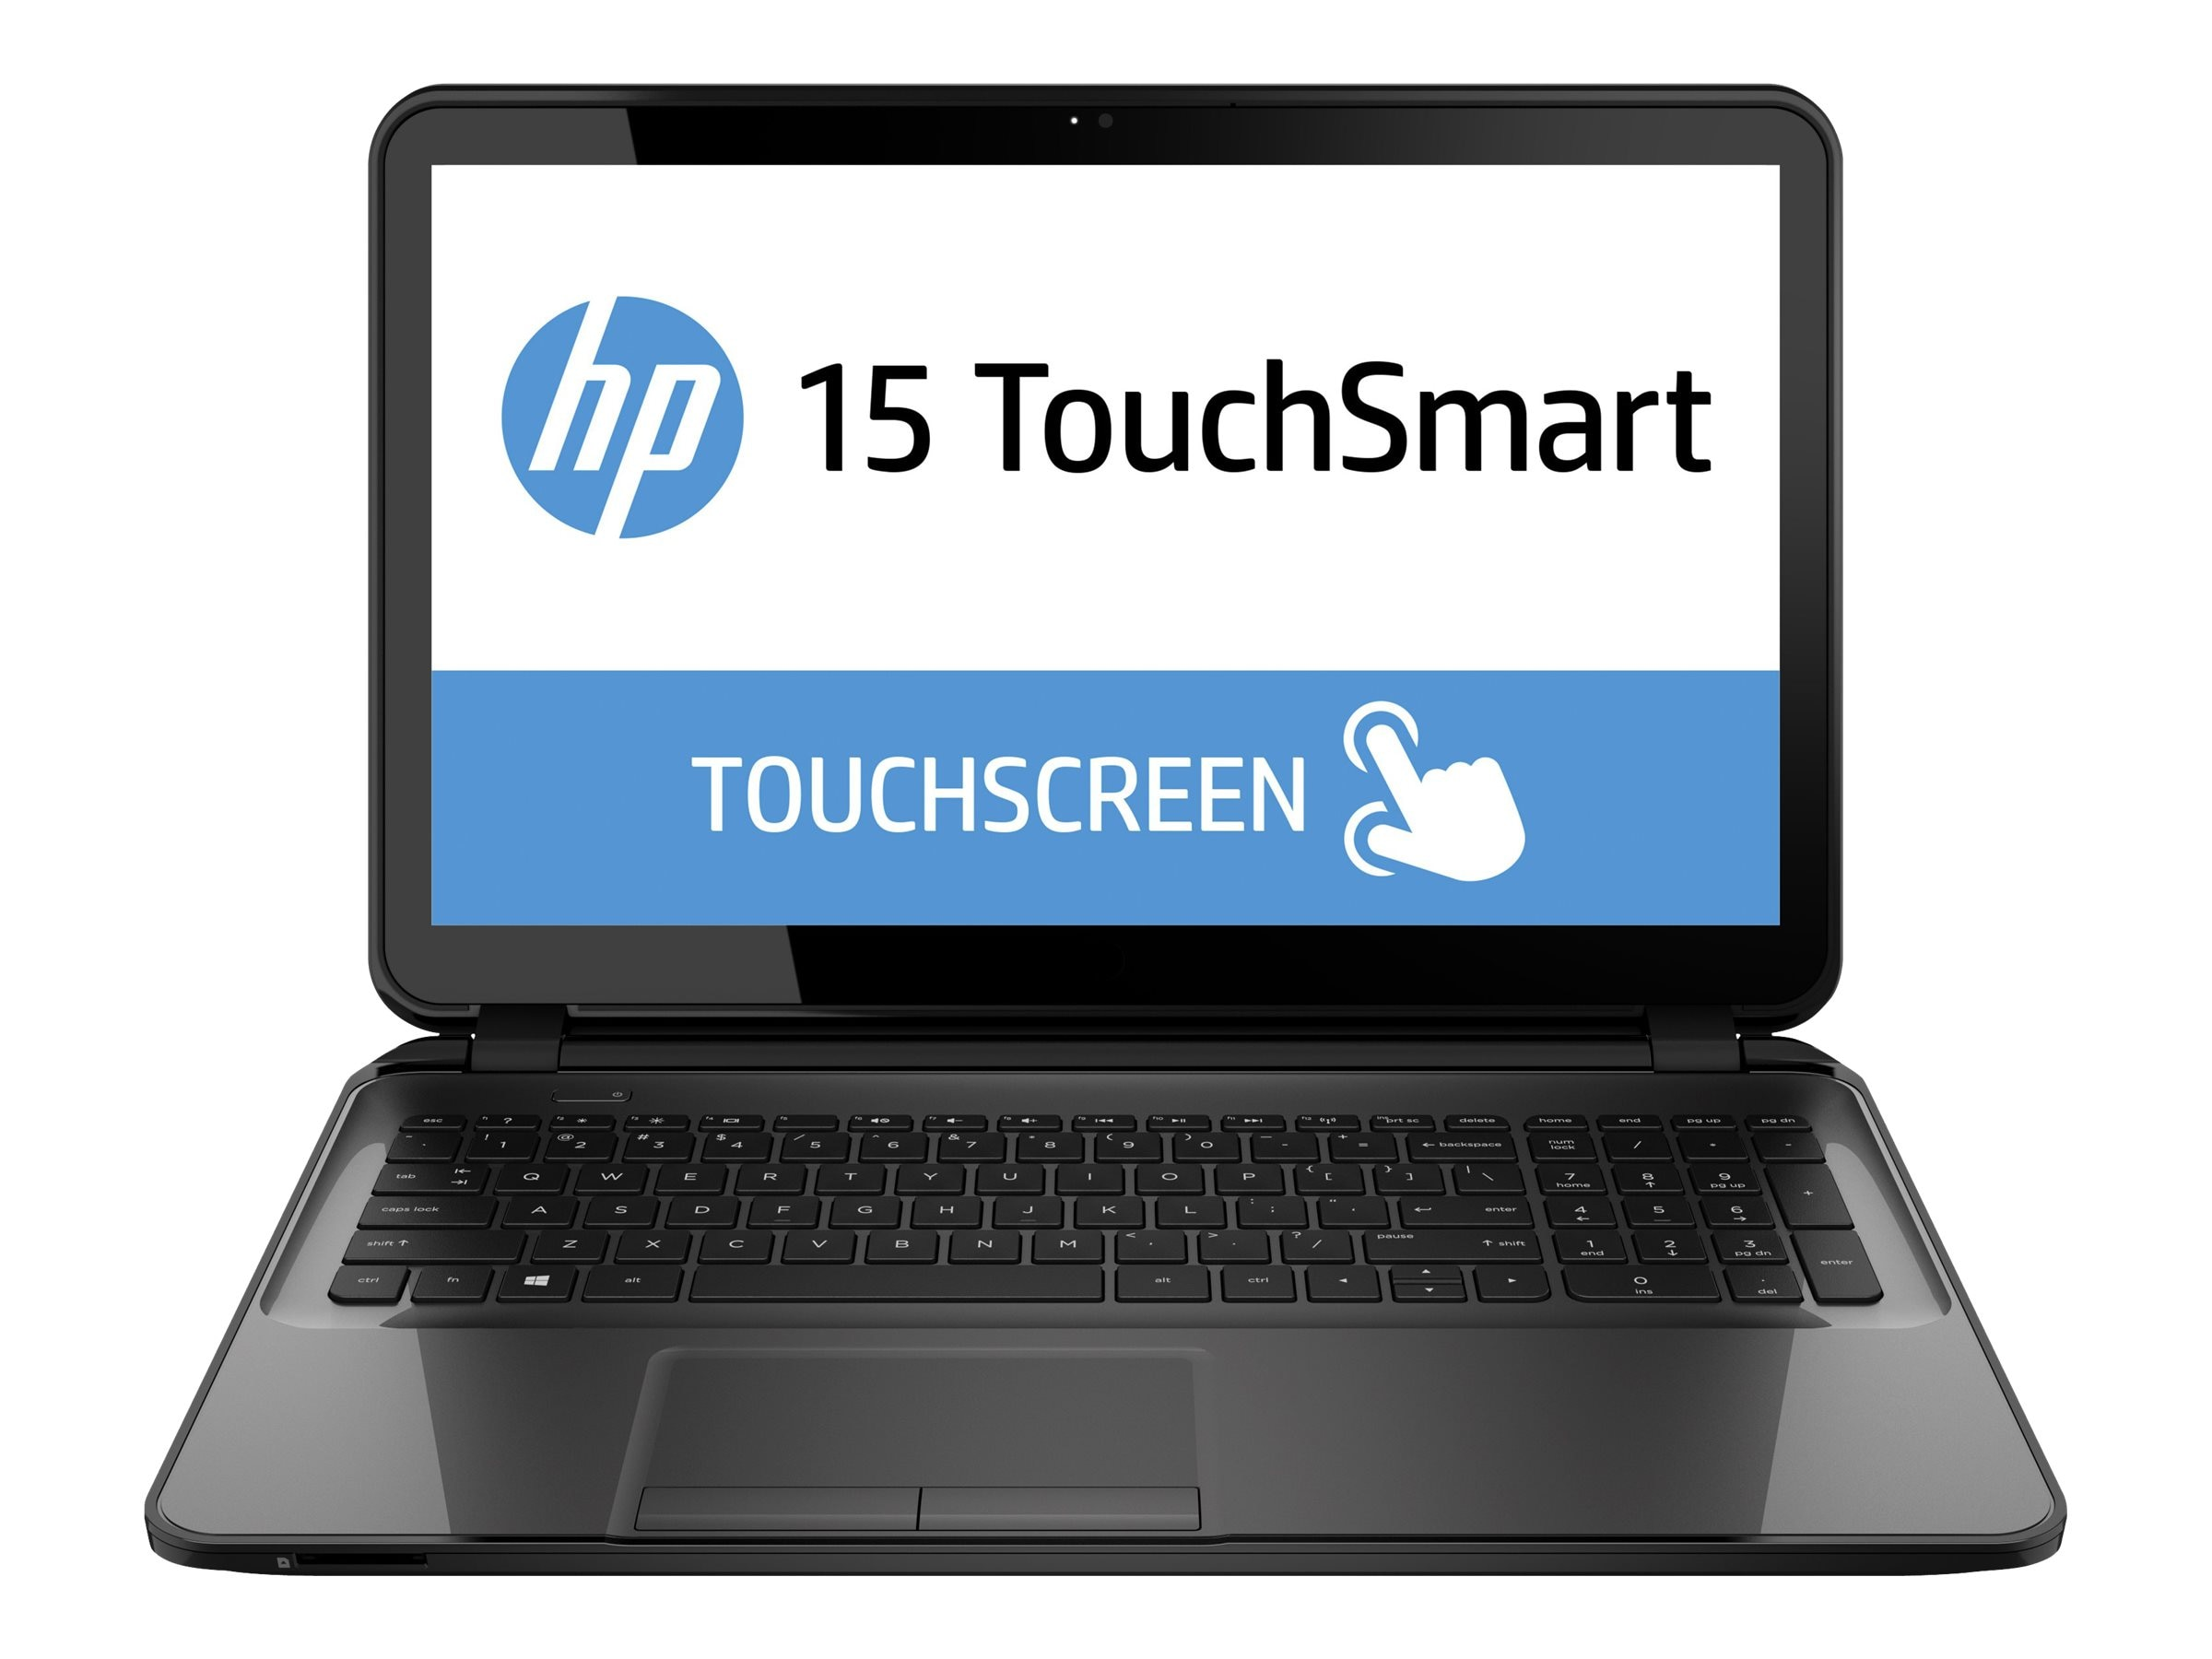 HP Envy TouchSmart 15-D095nr : 1.5GHz A4-Series 15.6in display, G1U88UA#ABA, 17036245, Notebooks